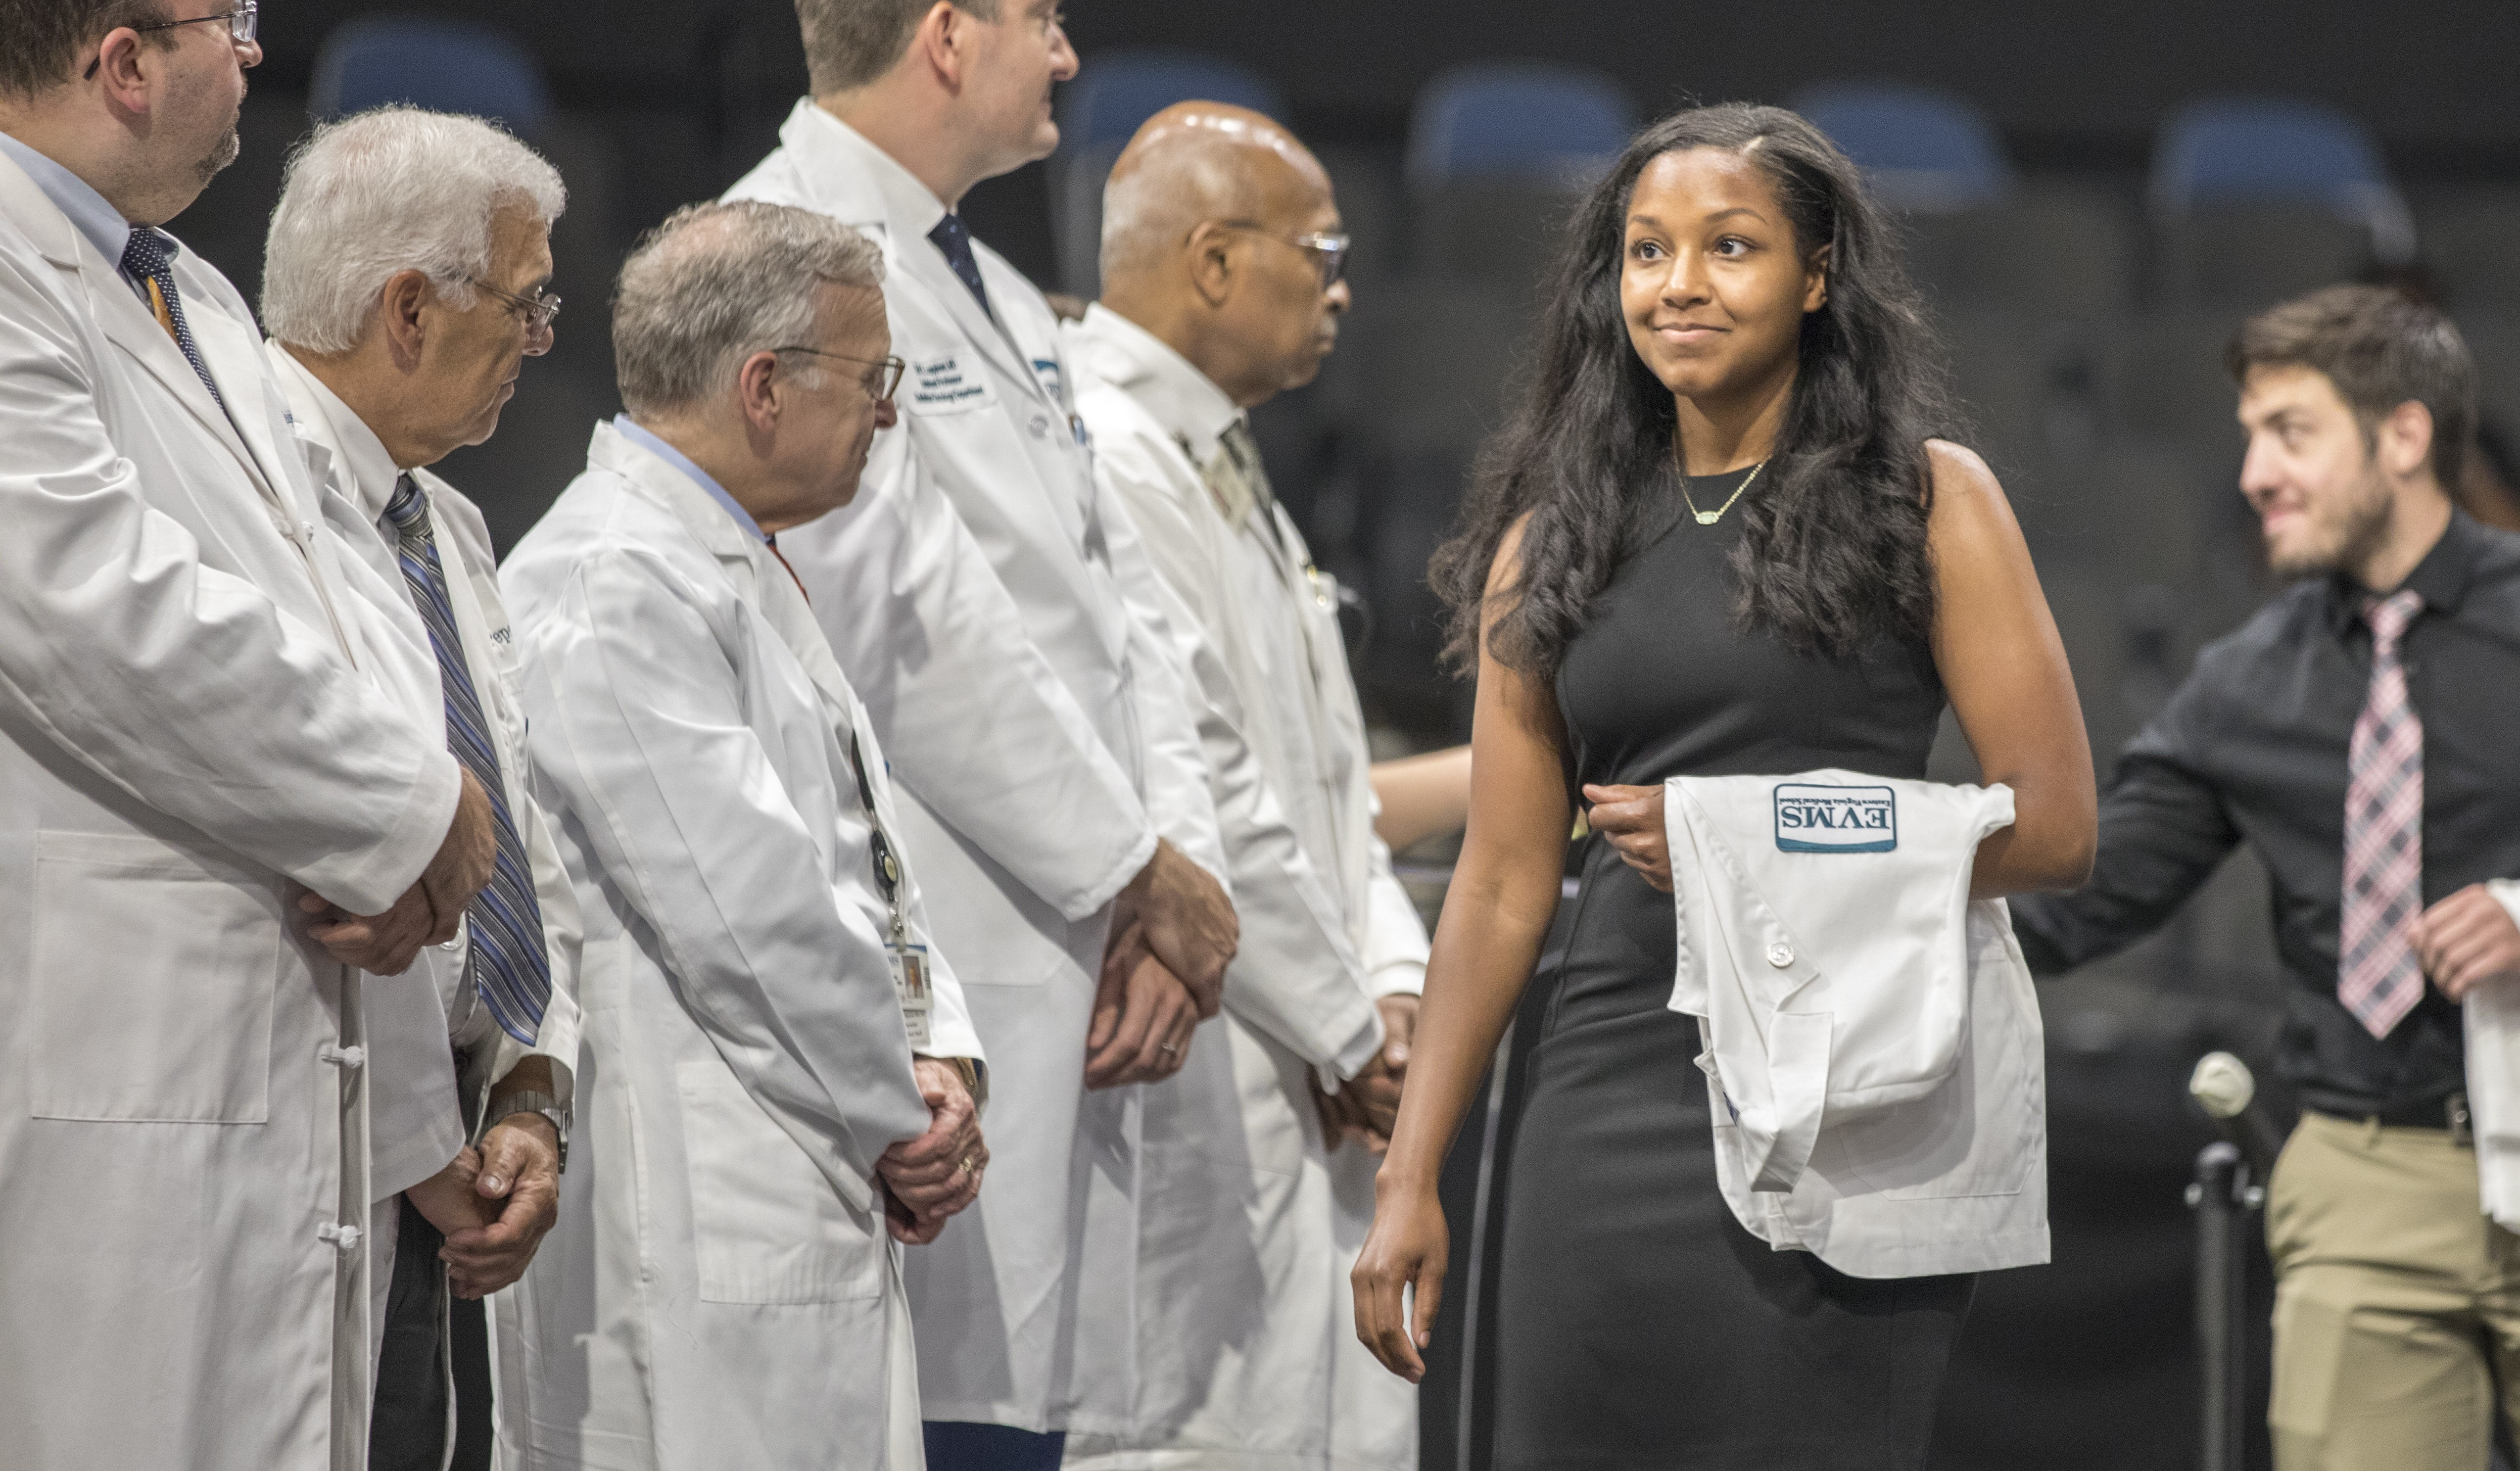 An EMVS student looks proud while walking across the stage during the 2019 MD White Coat Ceremony